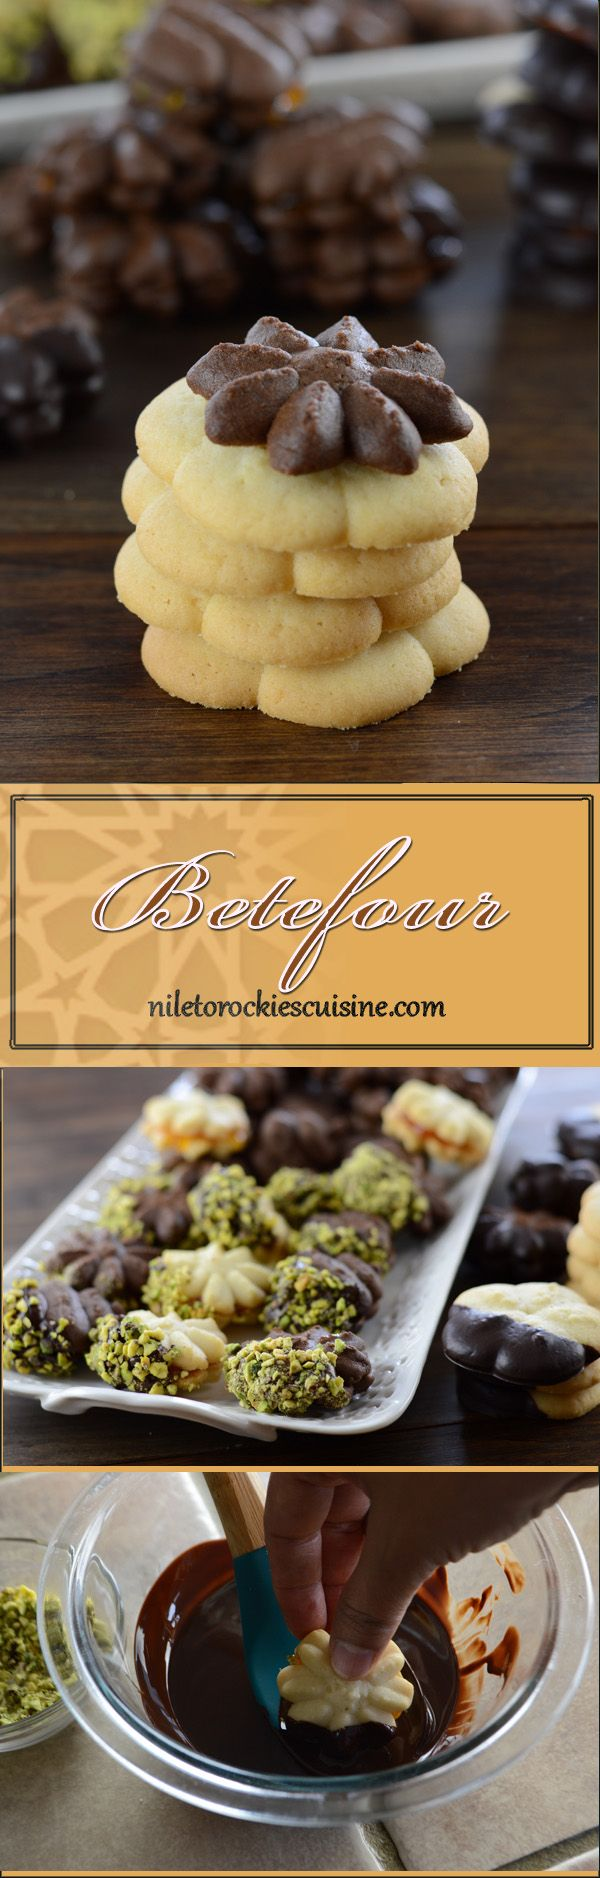 Betefour is a famous kind of Eid cookies that I've showed you before, it is a delicious kind of cookies which is kid and adult friendly. This is usually enjoyed along with Kahk, Lancashire cookies and many other types of cookies during Eid time in Egypt. It is always associated with happy memories and gatherings during those  special Eid days.